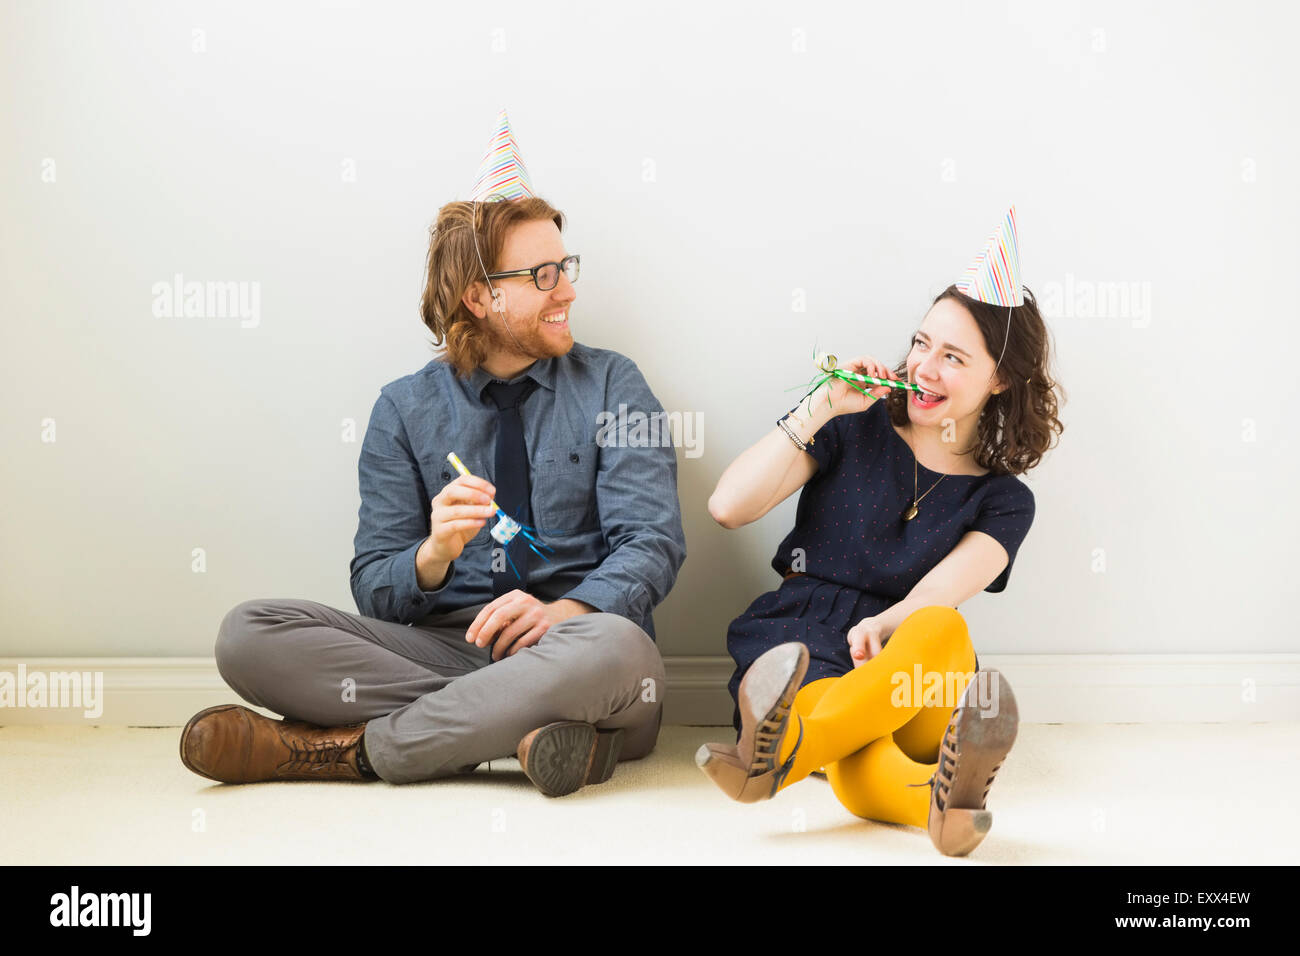 Couple with party horn blowers and party hats sitting on floor - Stock Image